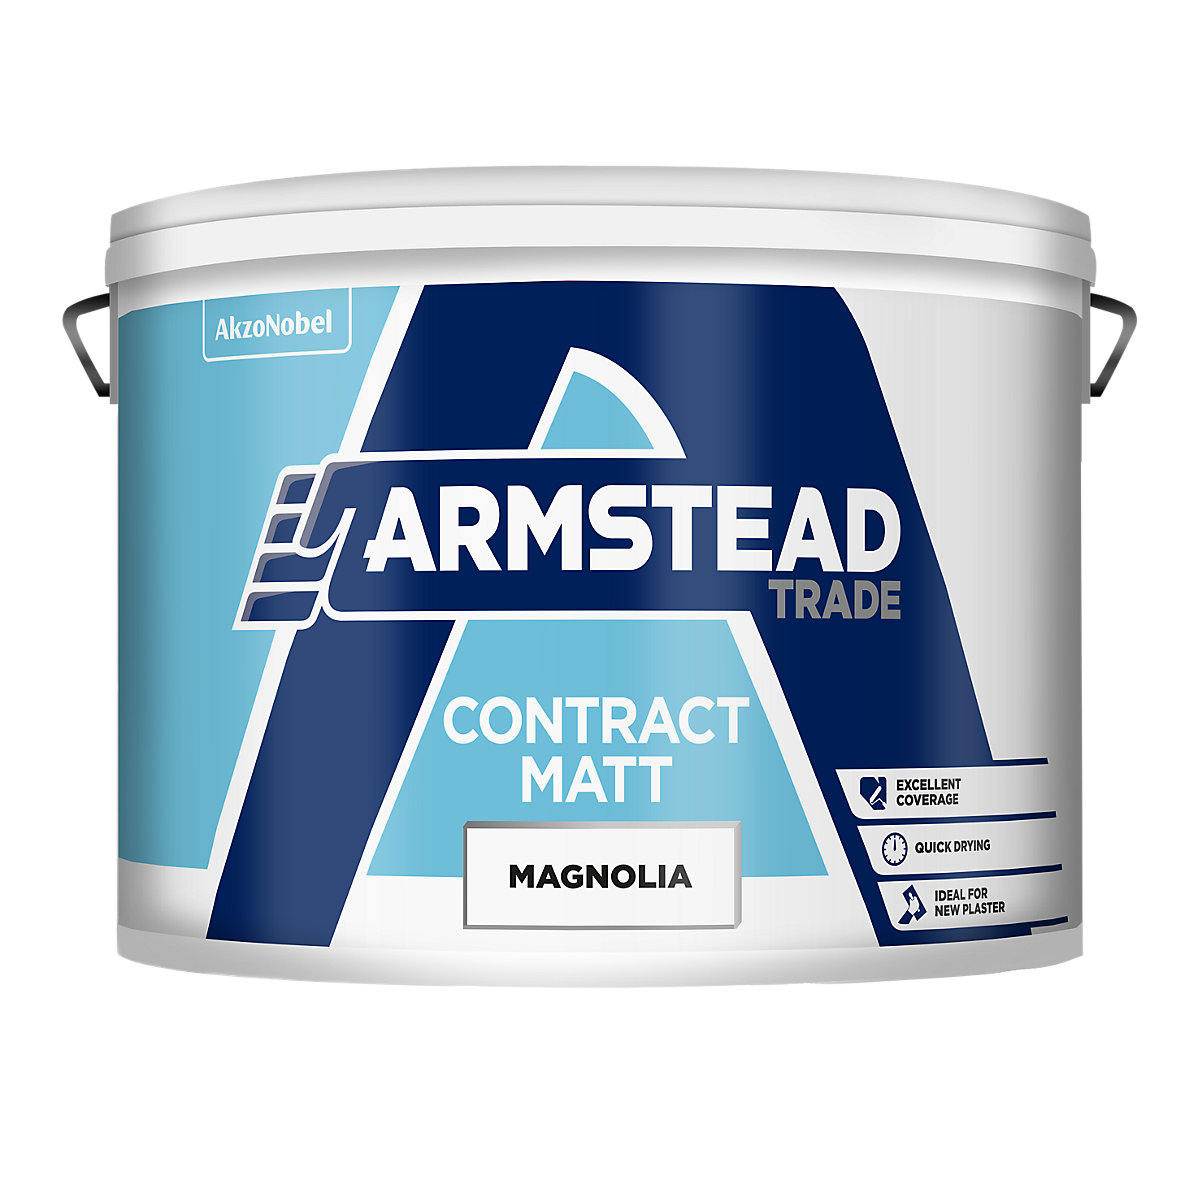 Armstead Trade Contract Matt Quick Drying Paint Magnolia 10L ...